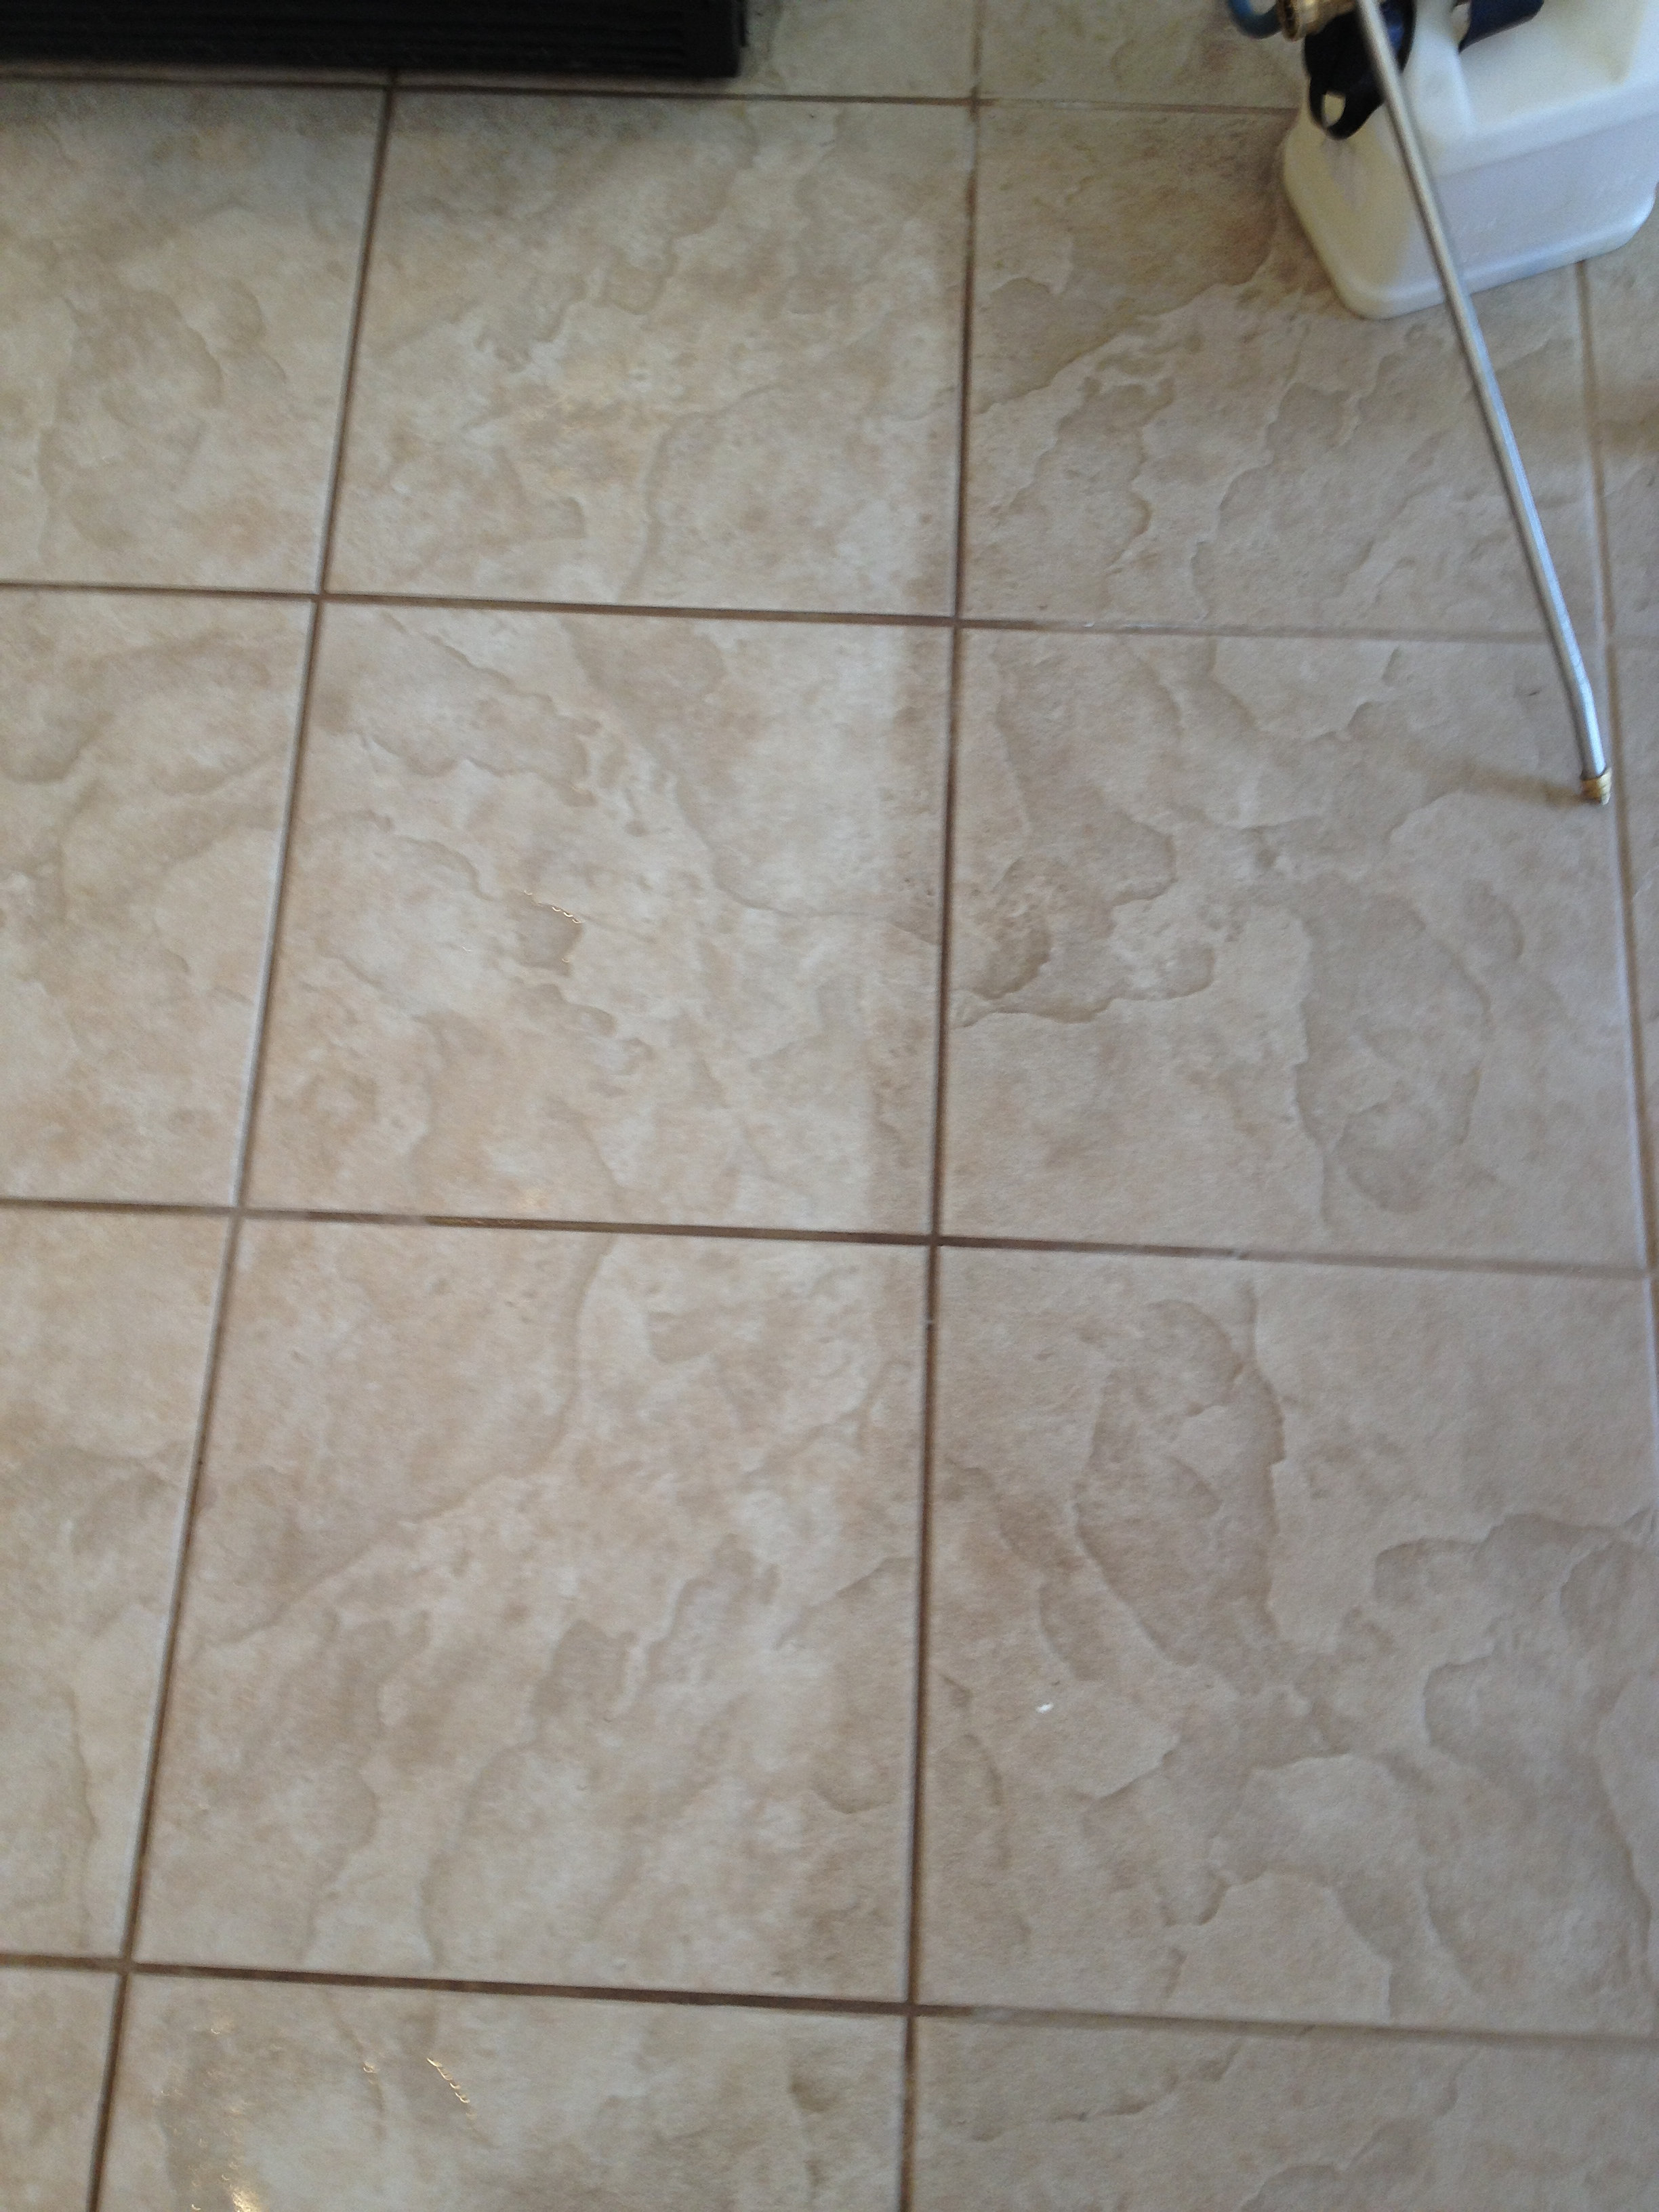 Tile   Grout Cleaning. Home  Amarillo Carpet cleaning  Tile cleaning and Upholstery cleaning